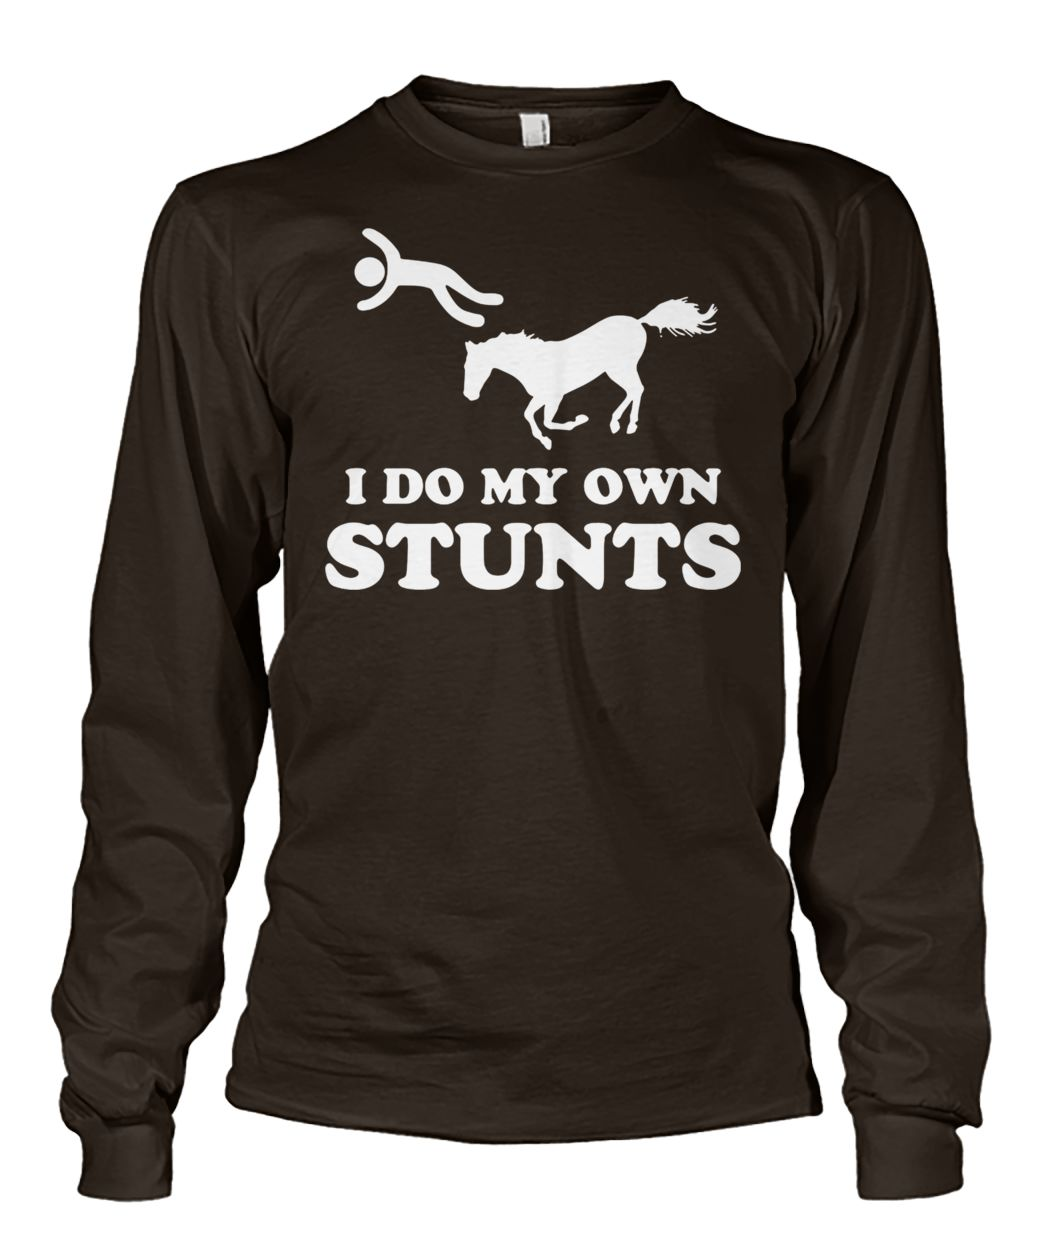 Unhorse I do my own stunts unisex long sleeve